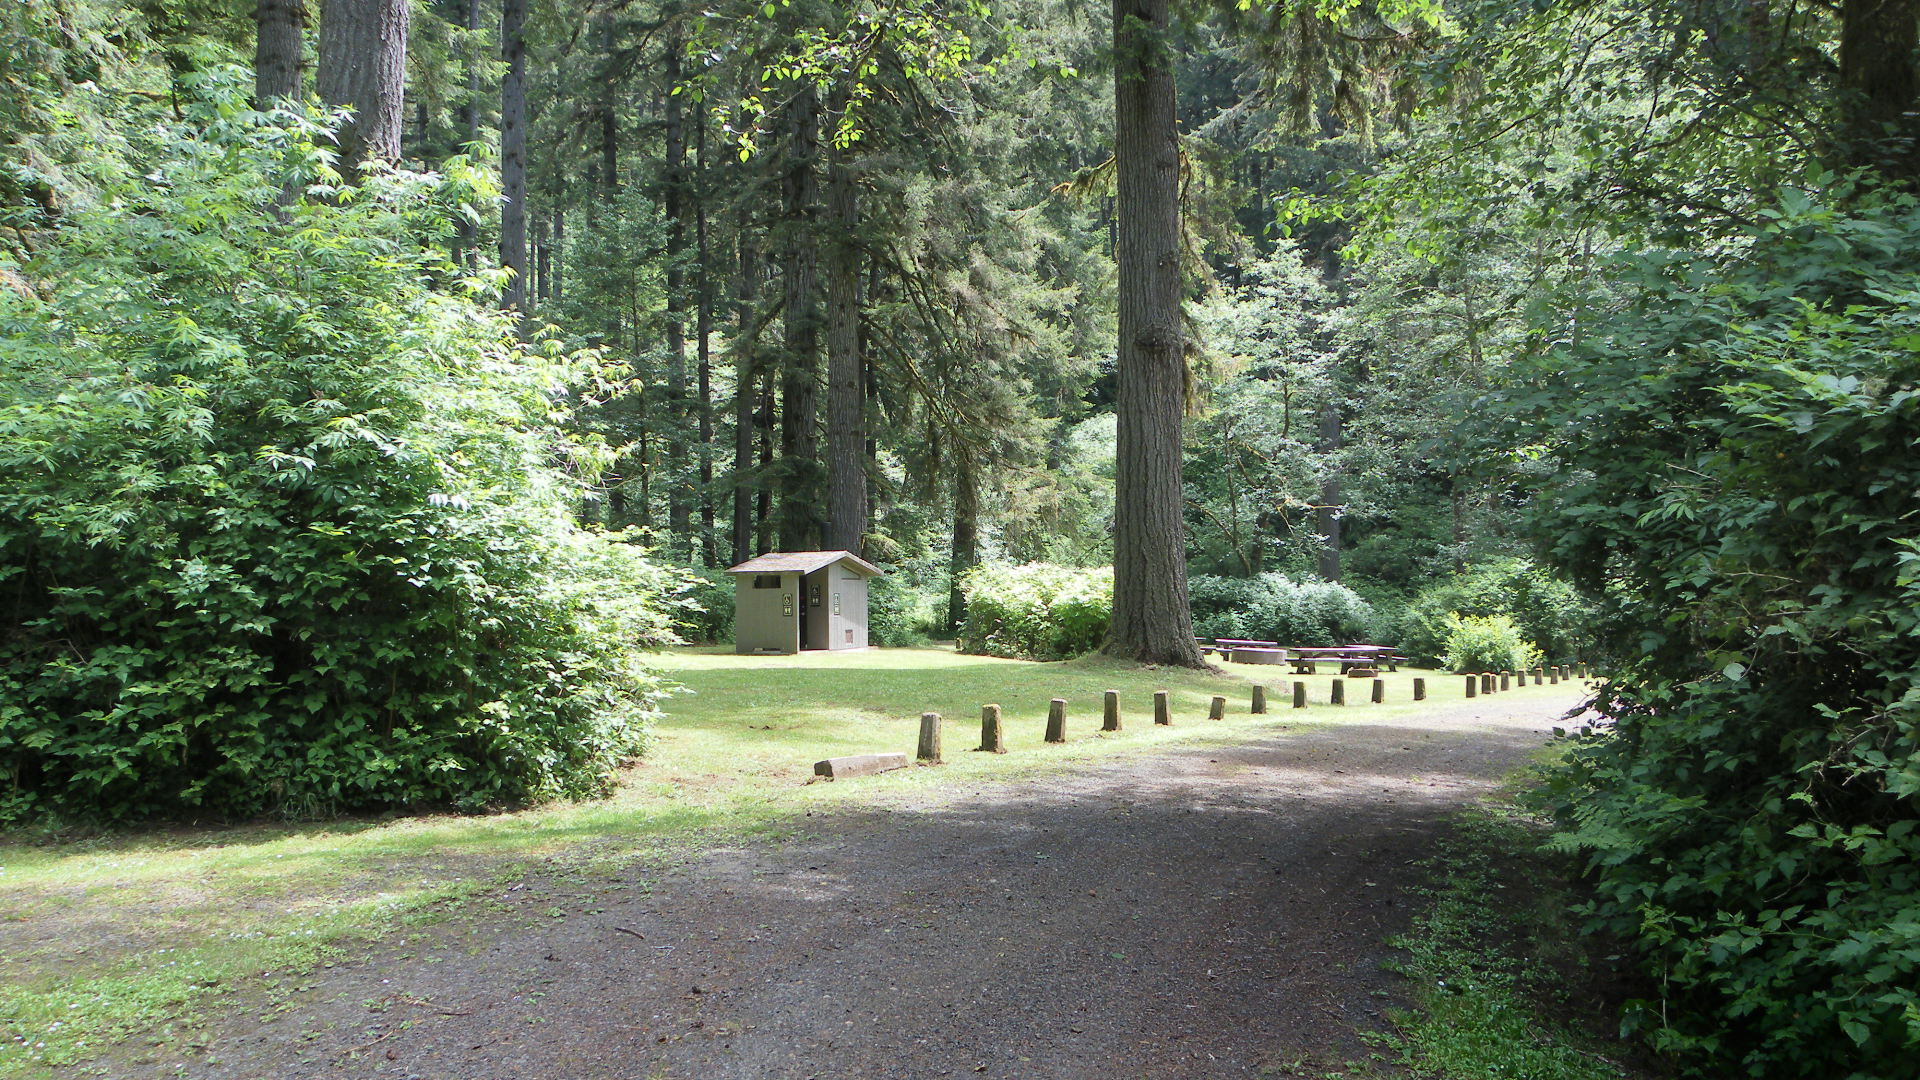 Entrance Road to Alsea Group Site